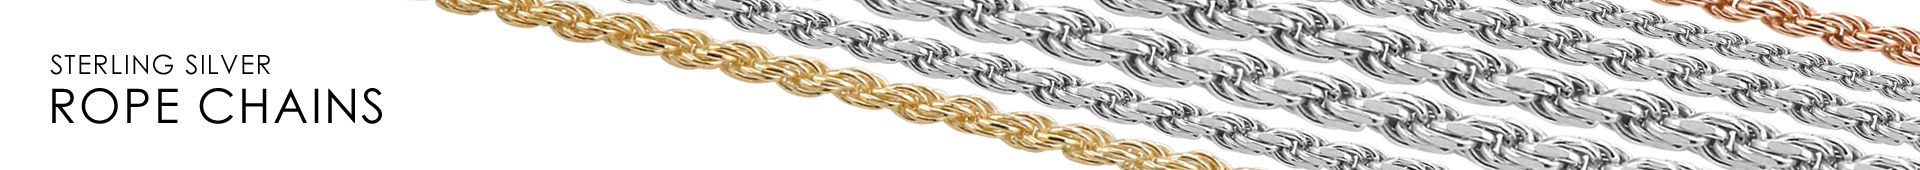 Sterling Silver Rope Chain Link Horizontal Banner